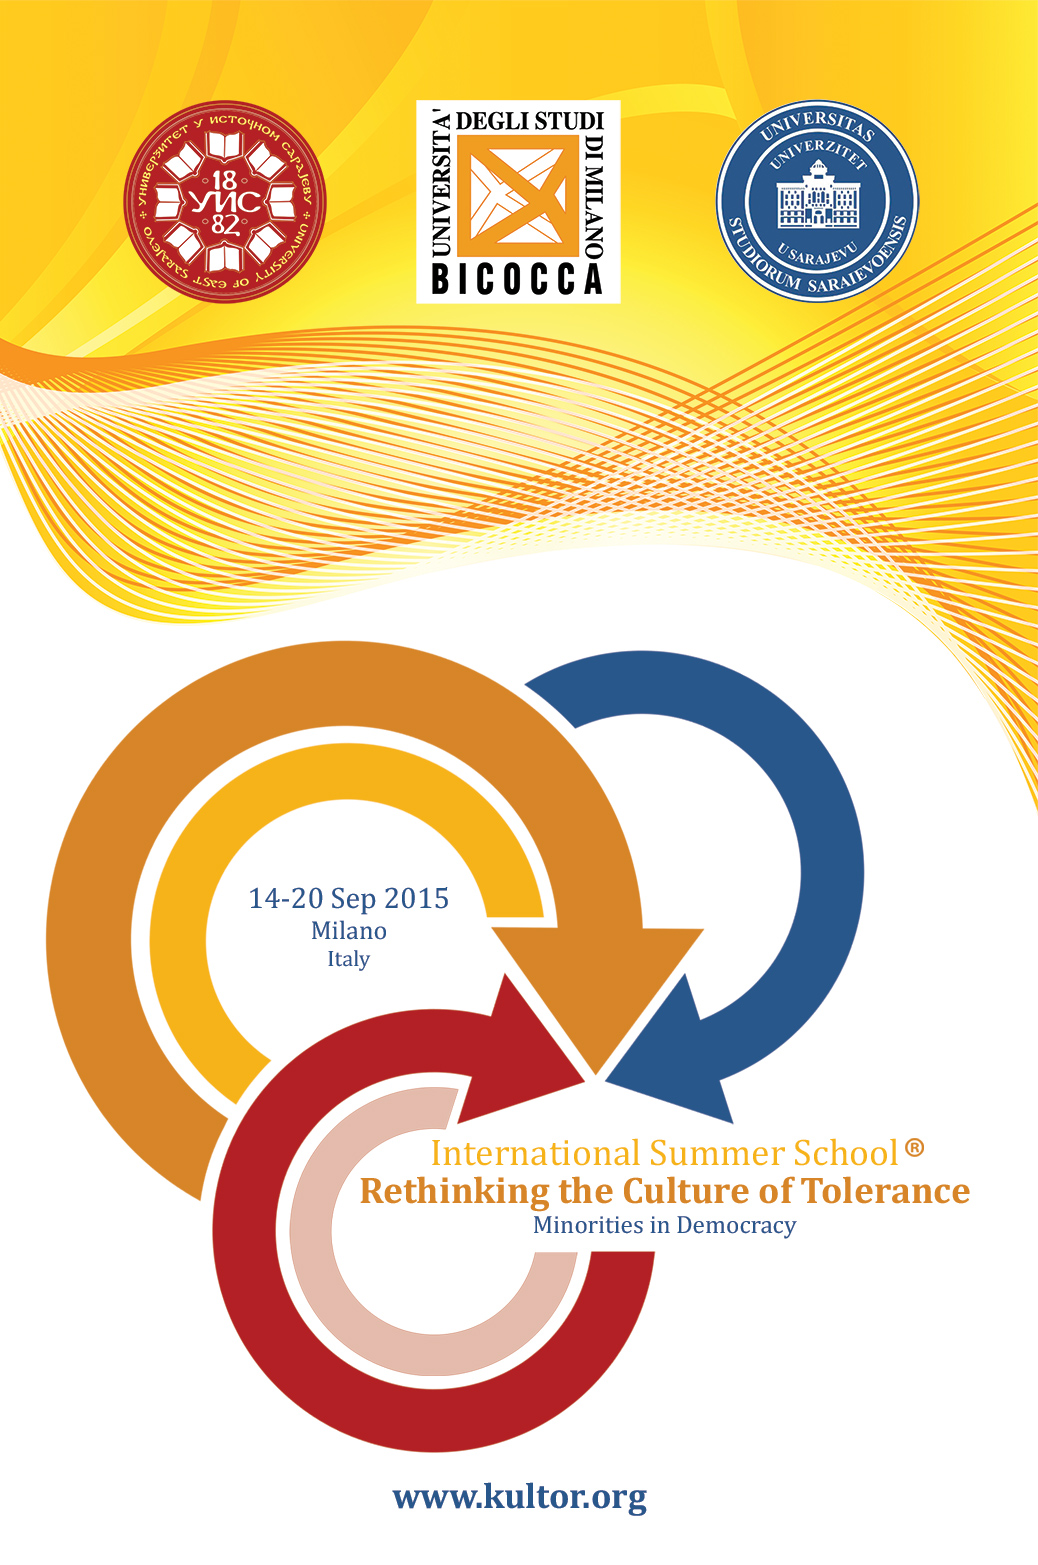 The International Summer School 'Rethinking the Culture of Tolerance' 2015